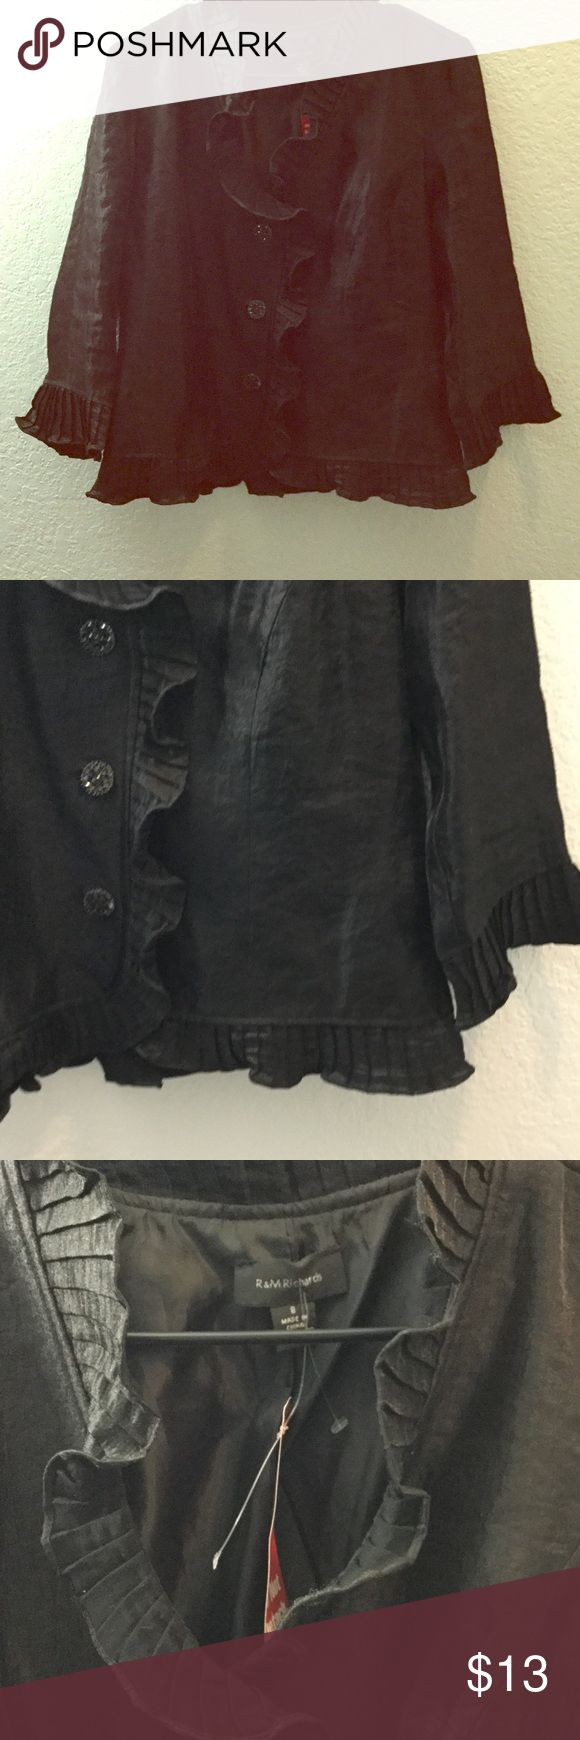 Black ruffle jacket😃!!! Black ,button-up , fancy jacket with ruffles on the sleeves and neck💕 R&M Richards Jackets & Coats Utility Jackets